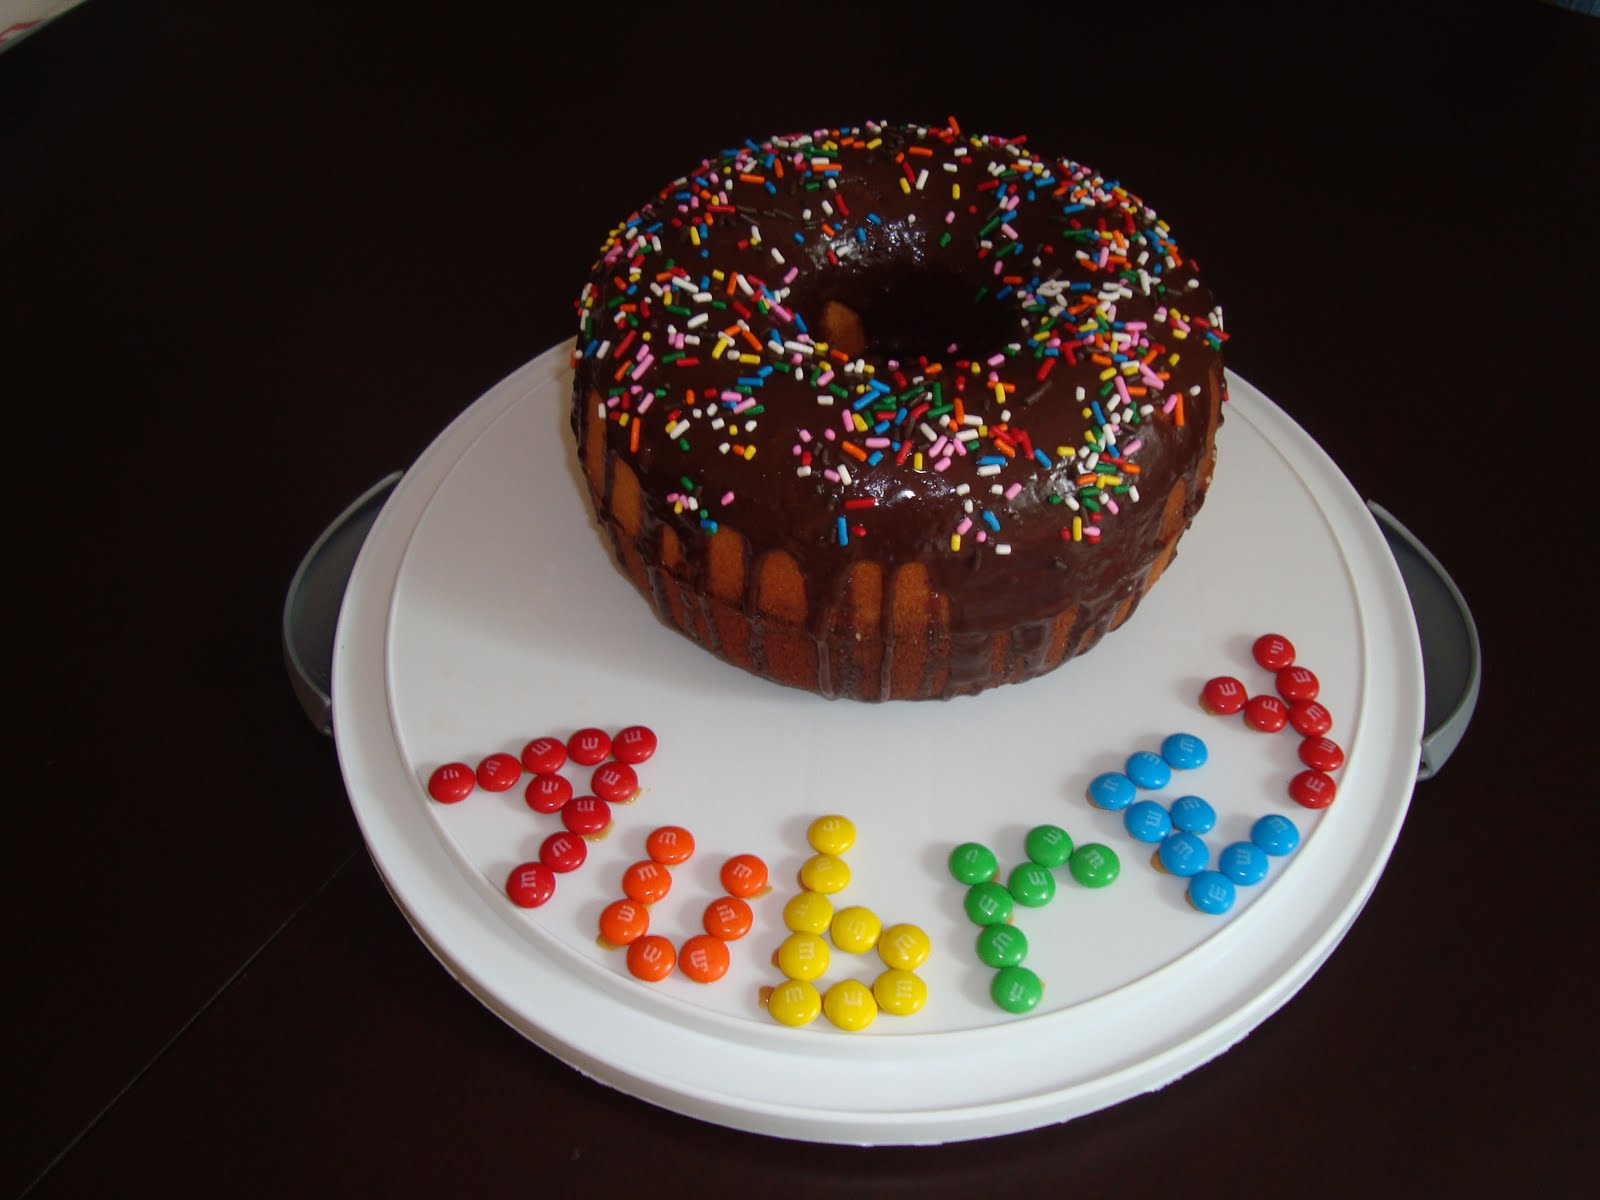 It So We Had A Giant Donut Cake For Her Third Birthday And Made Bakers Theme She Got Own Hat Apron With Name On Too